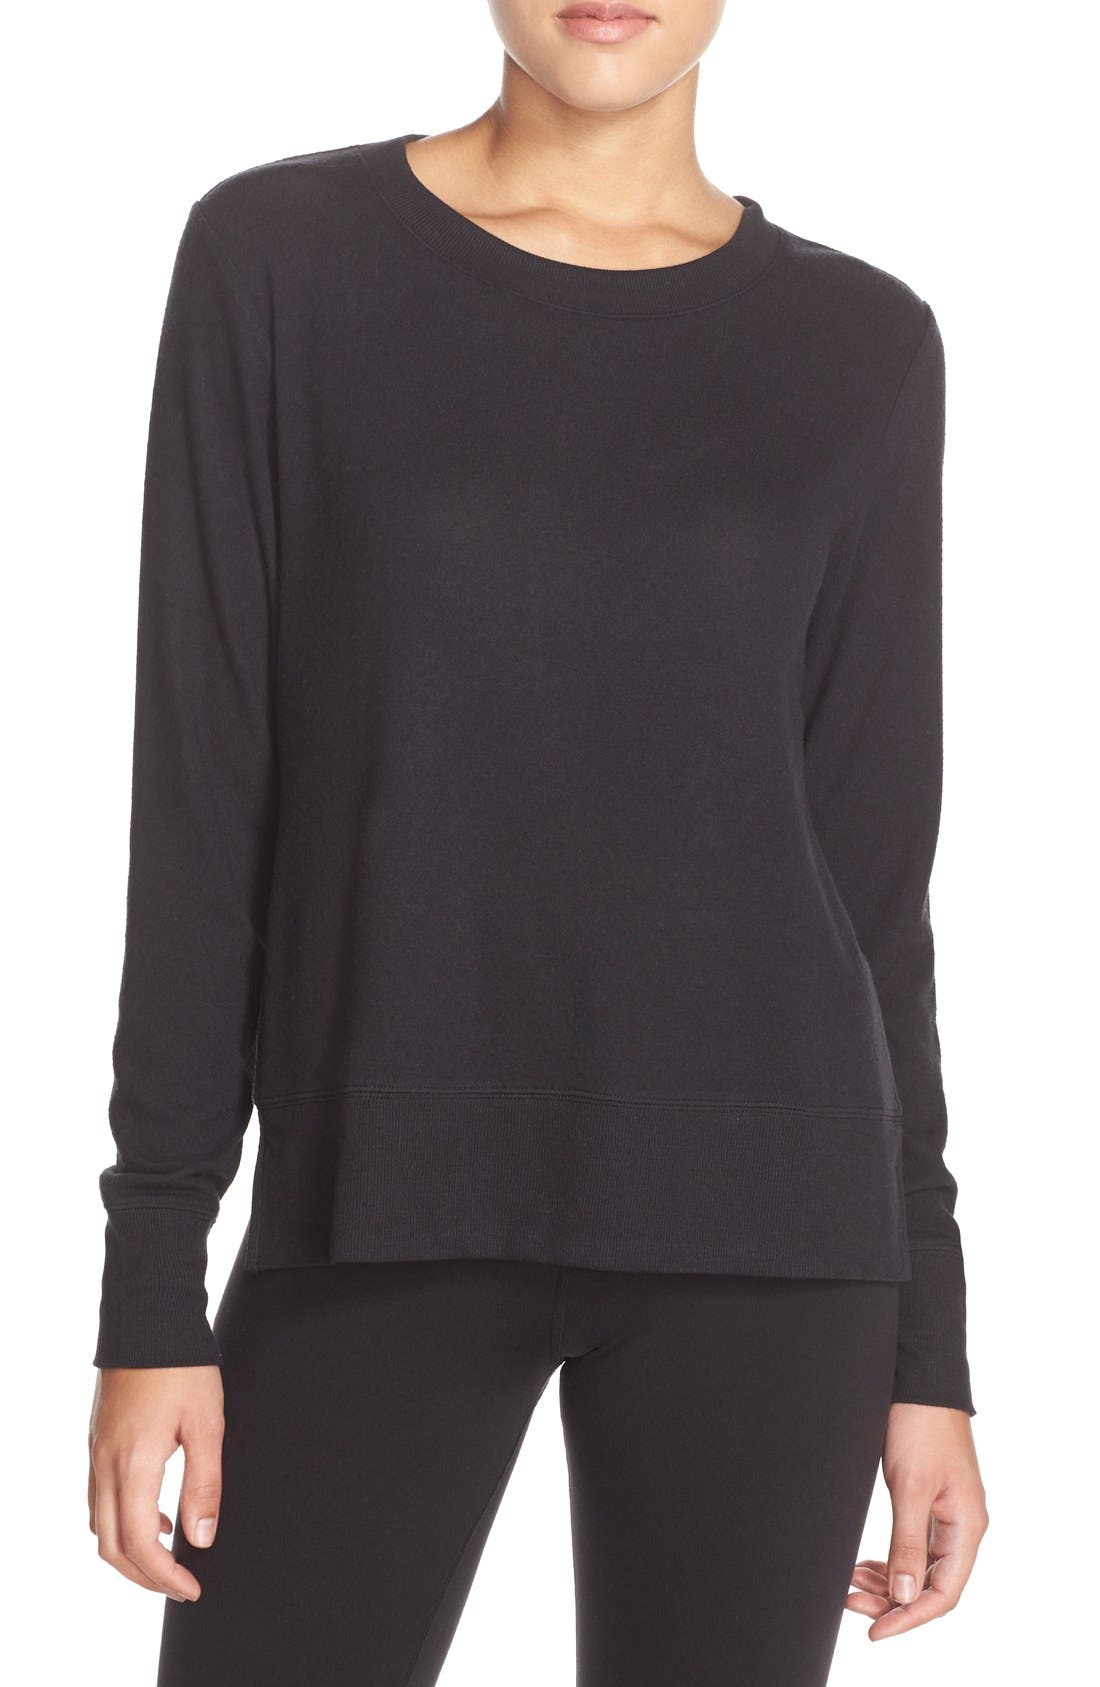 ALO, 'Glimpse' Long Sleeve Top, Main thumbnail 1, color, BLACK